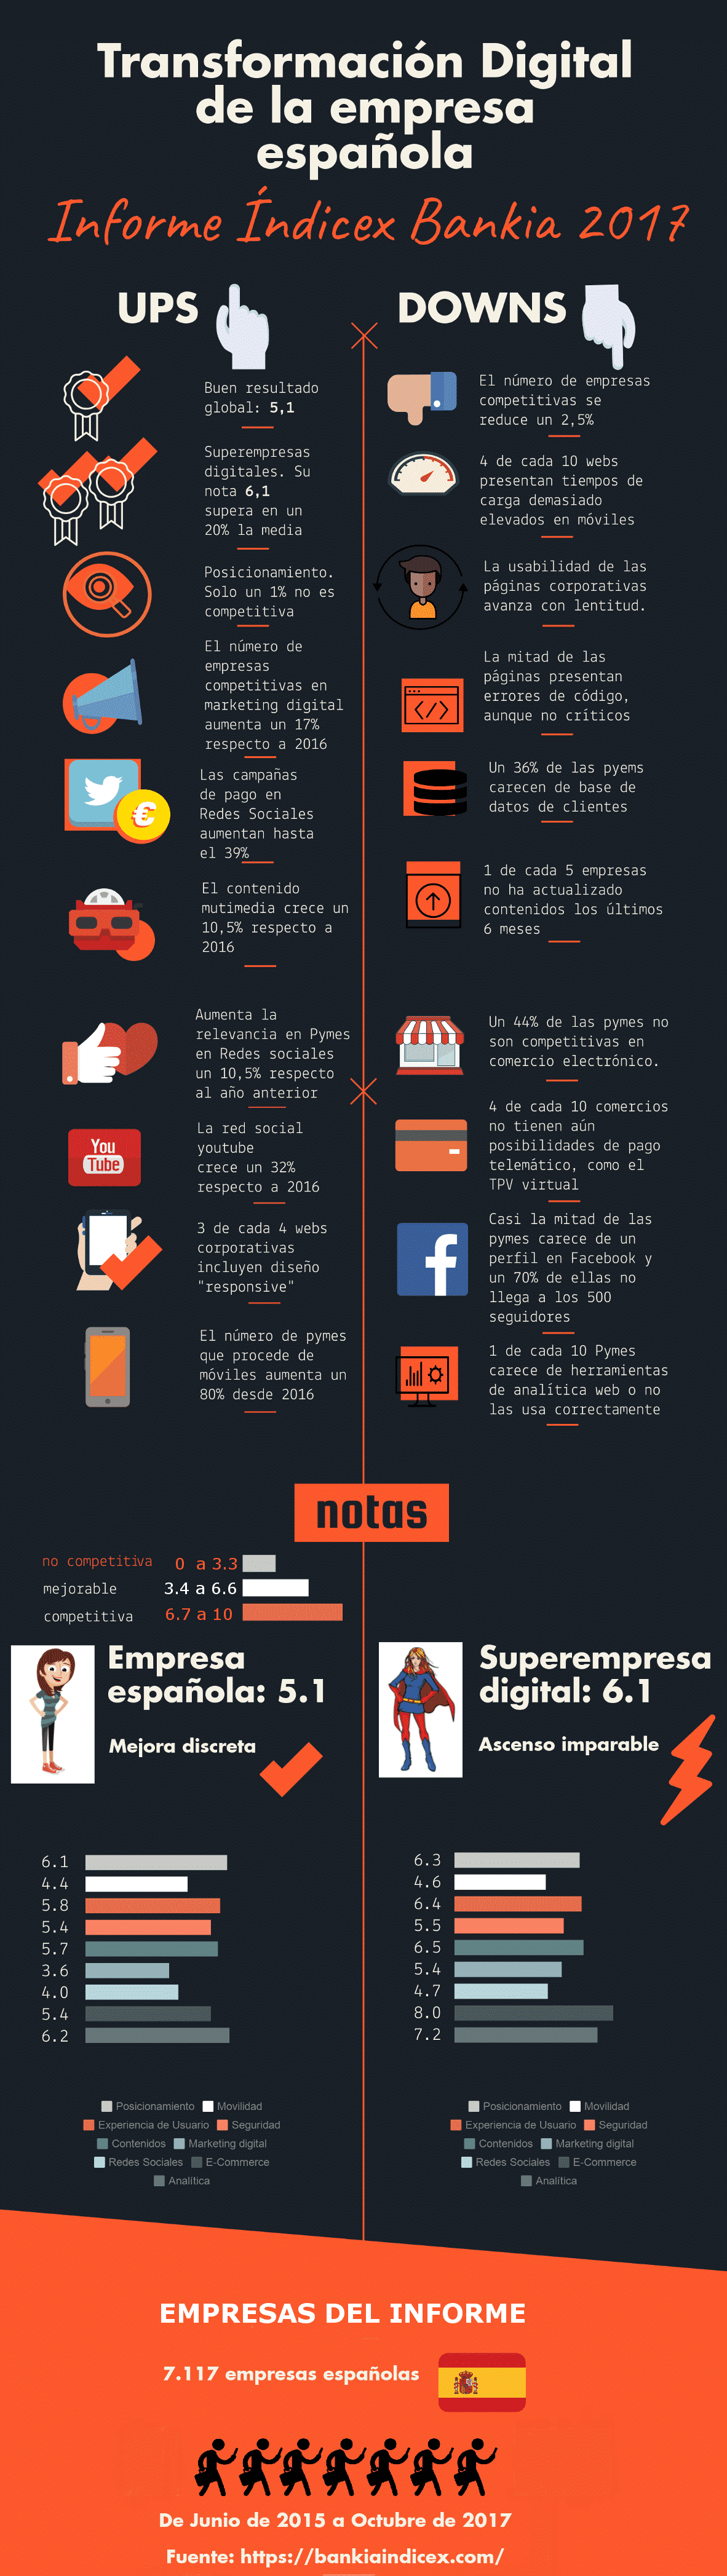 Infografía Transformación Digital